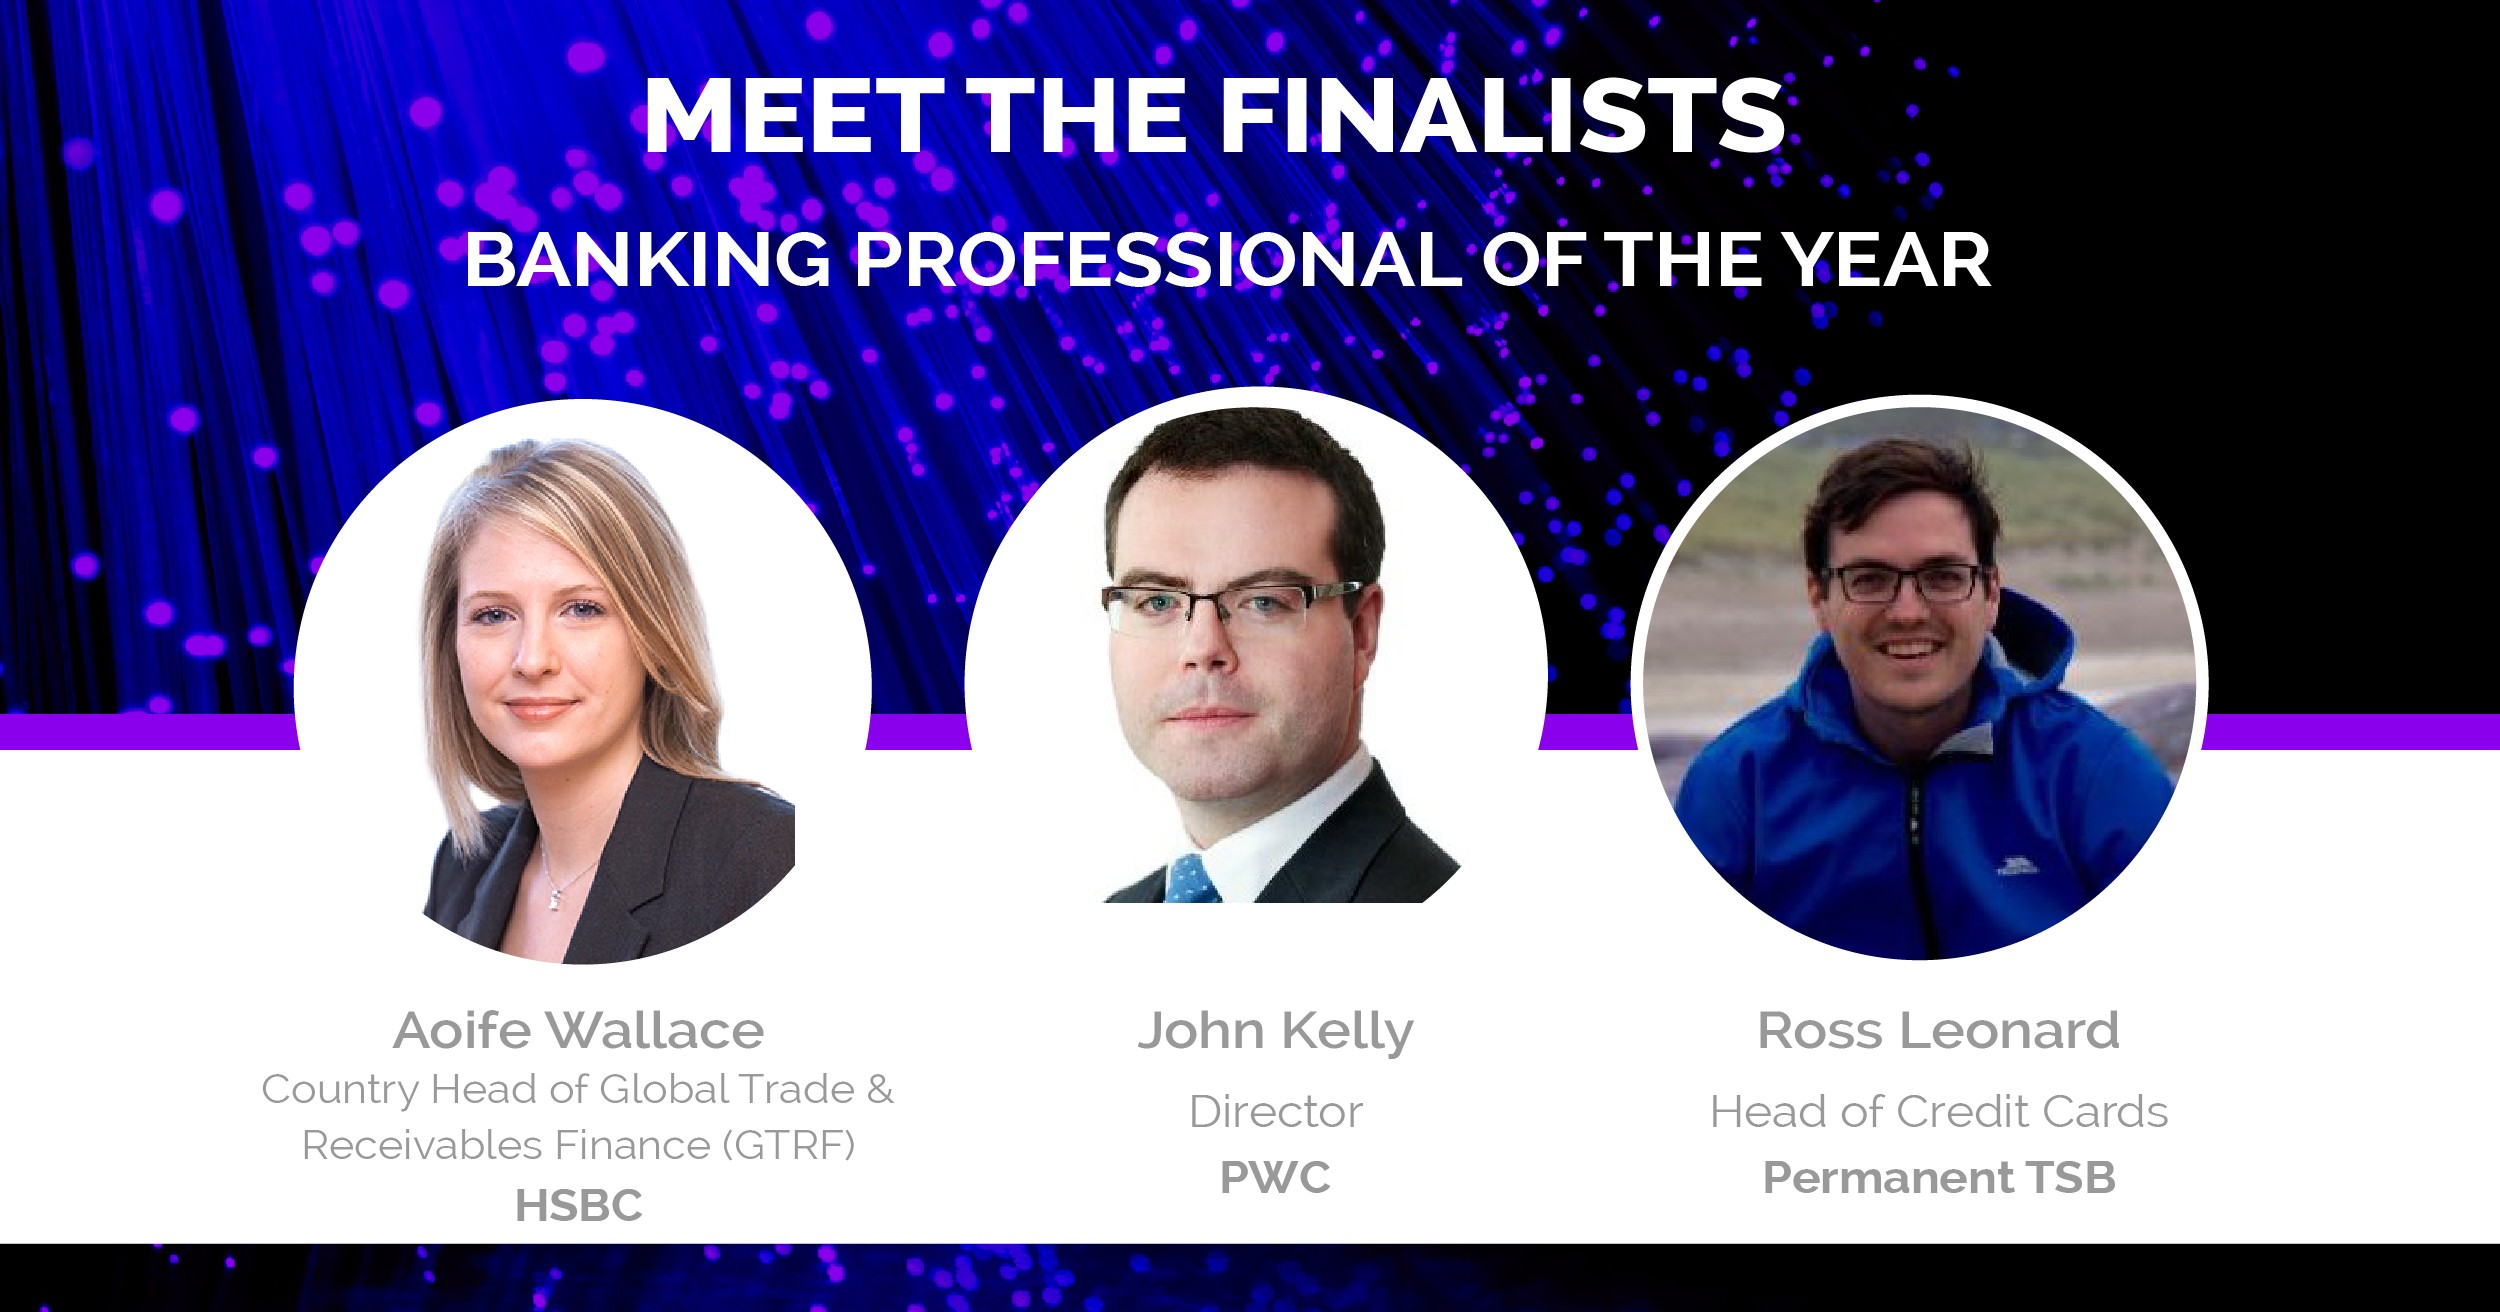 Banking Finalists Early Career Awards 2016